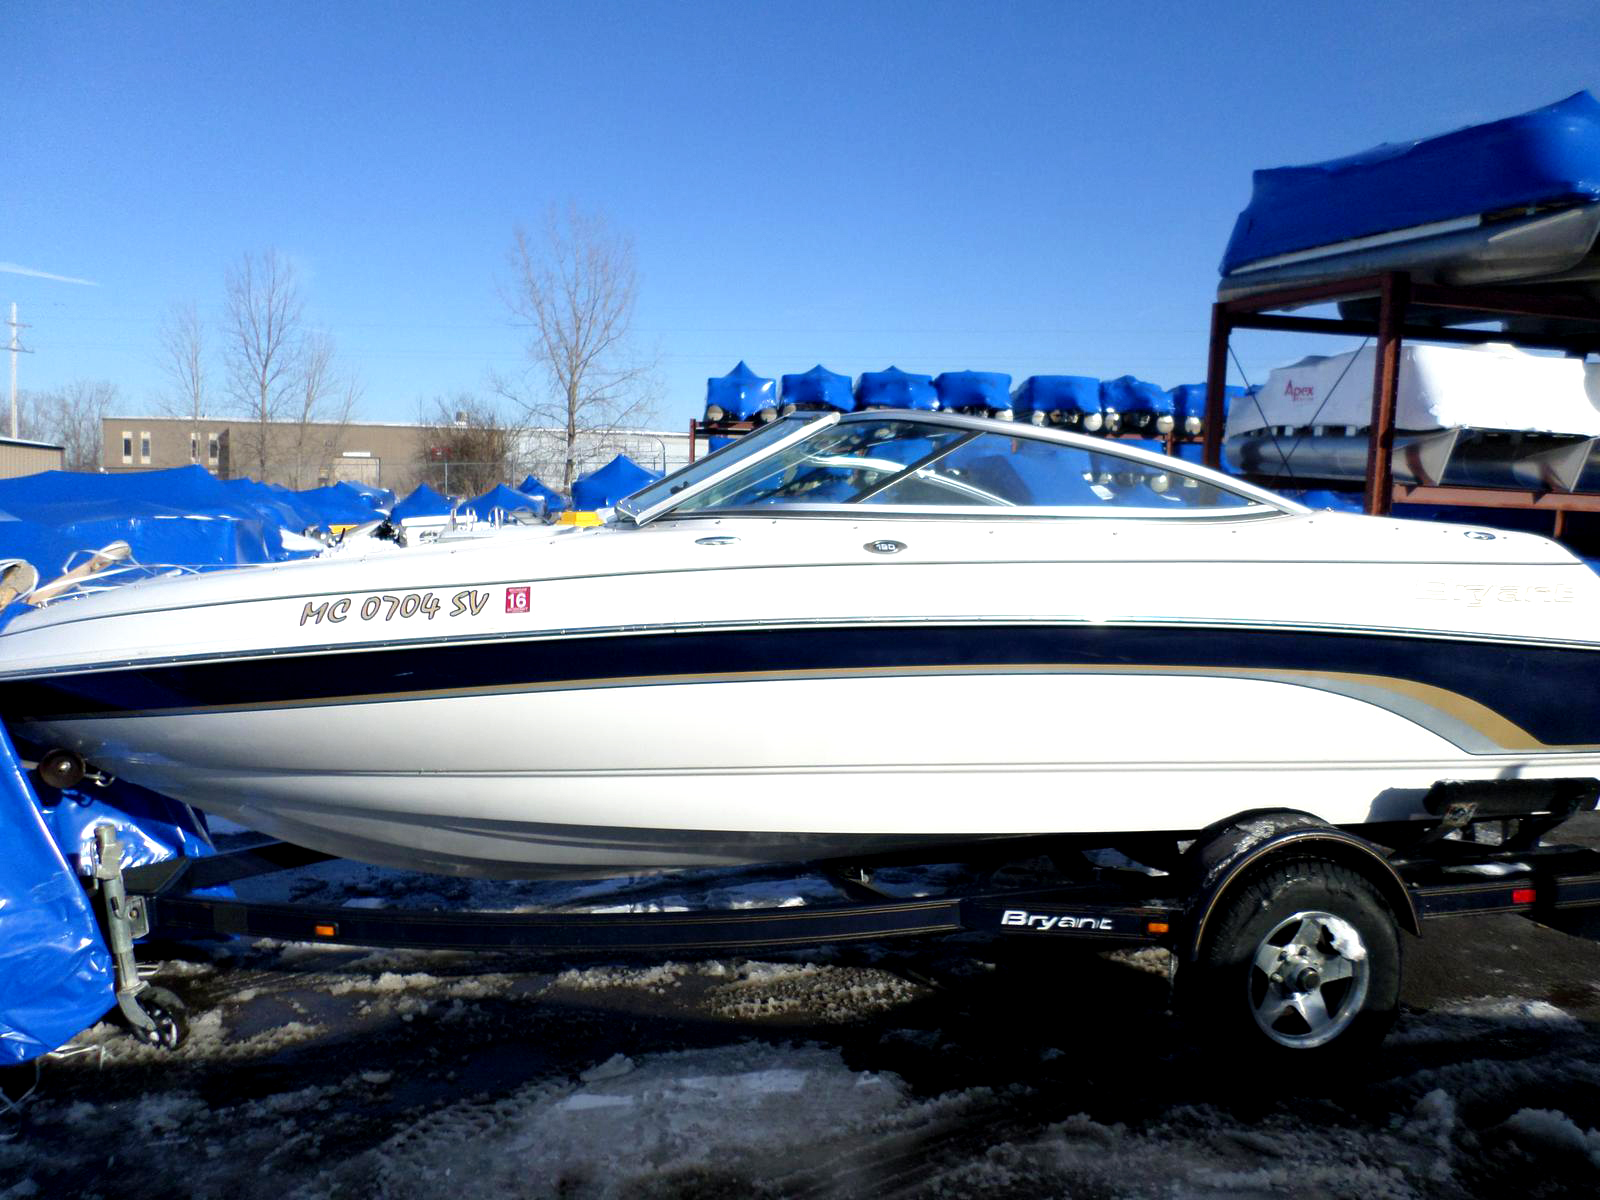 2005 BRYANT 190 9383 43L V6 Mercruiser low hours trailer included 14995